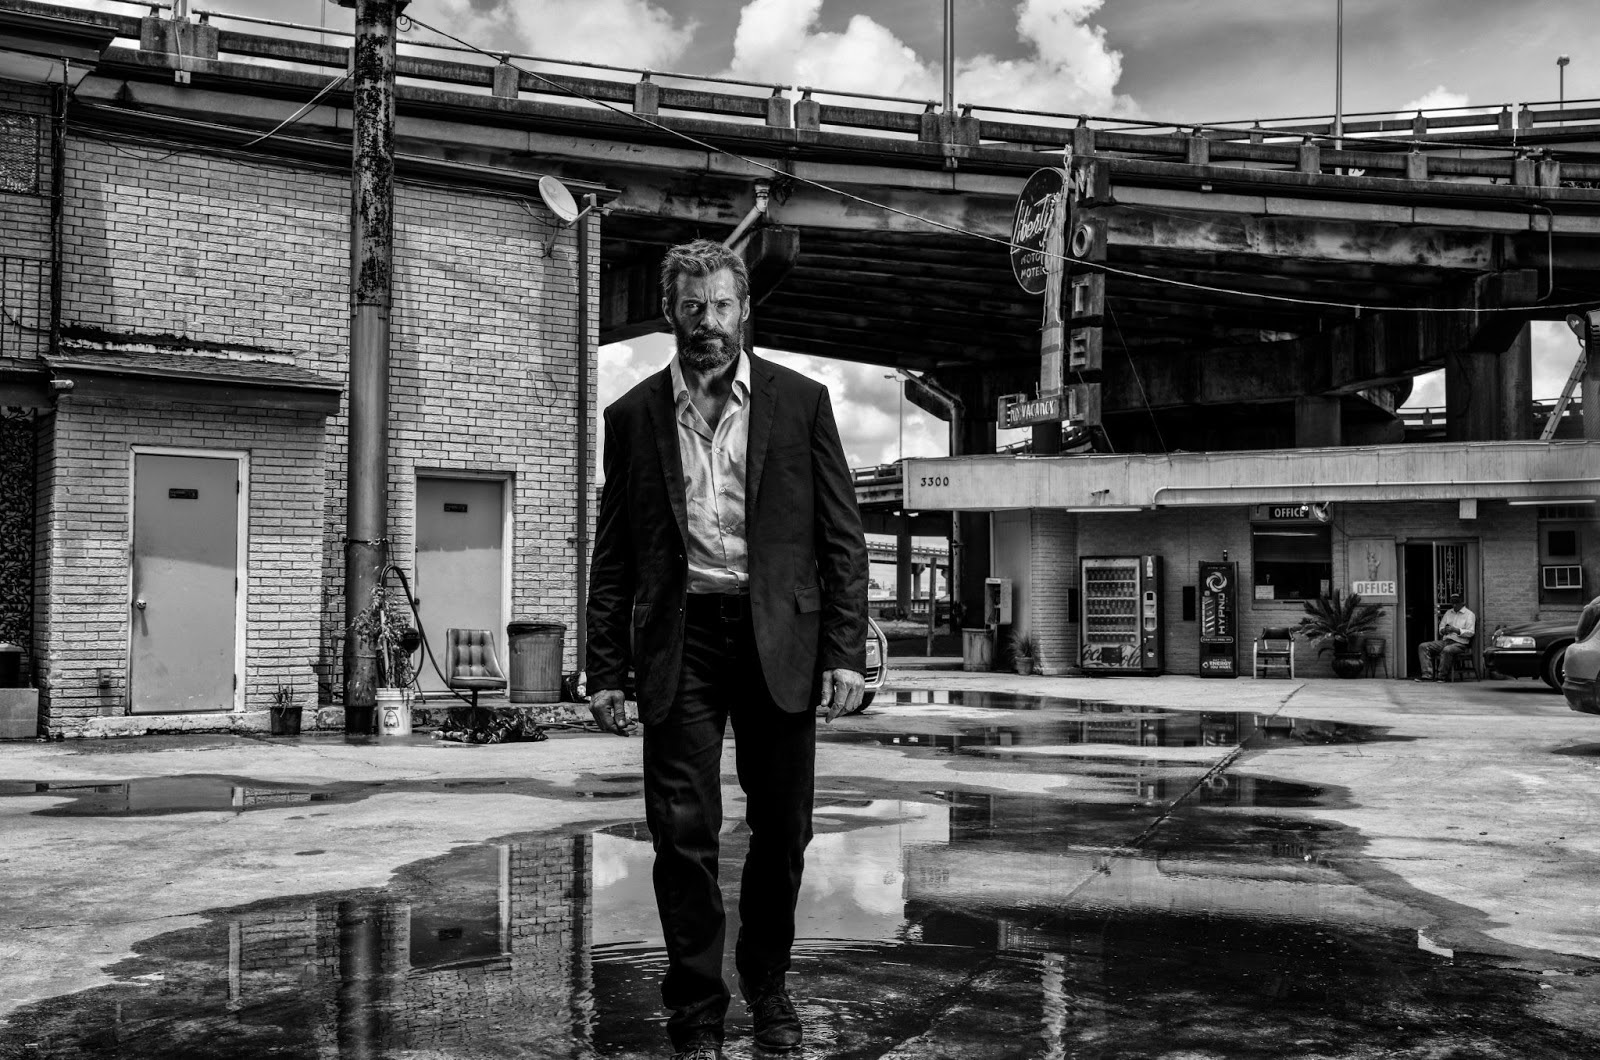 LOGAN Is Coming To Theaters In Black And White On May 23